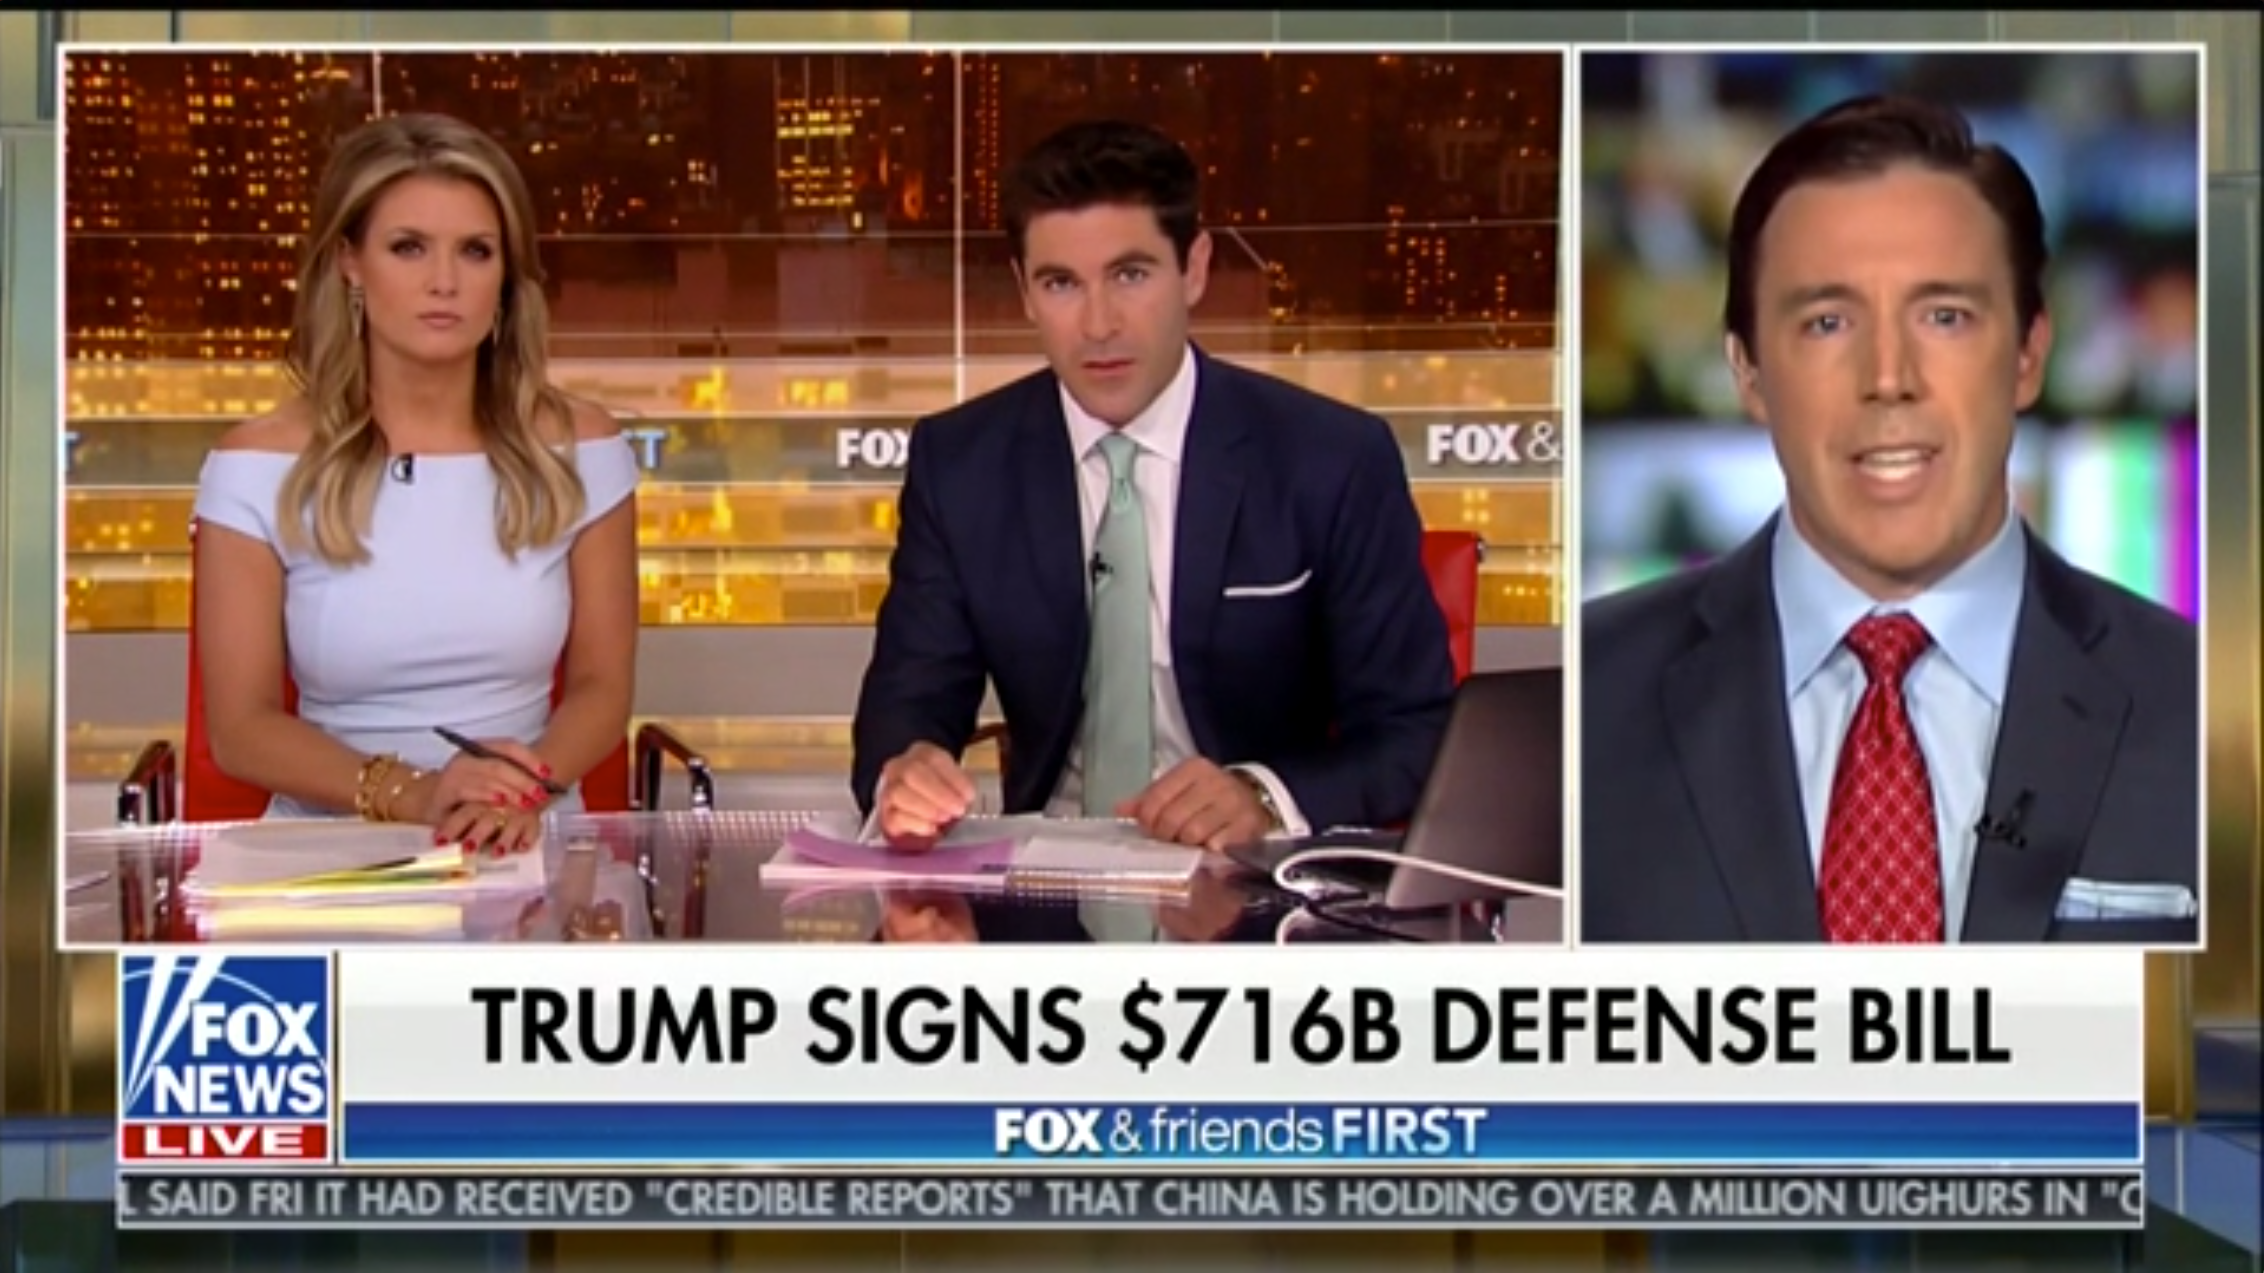 Mark L. Rockefeller on Fox News discussing the National Defense Authorization Act of August 2018